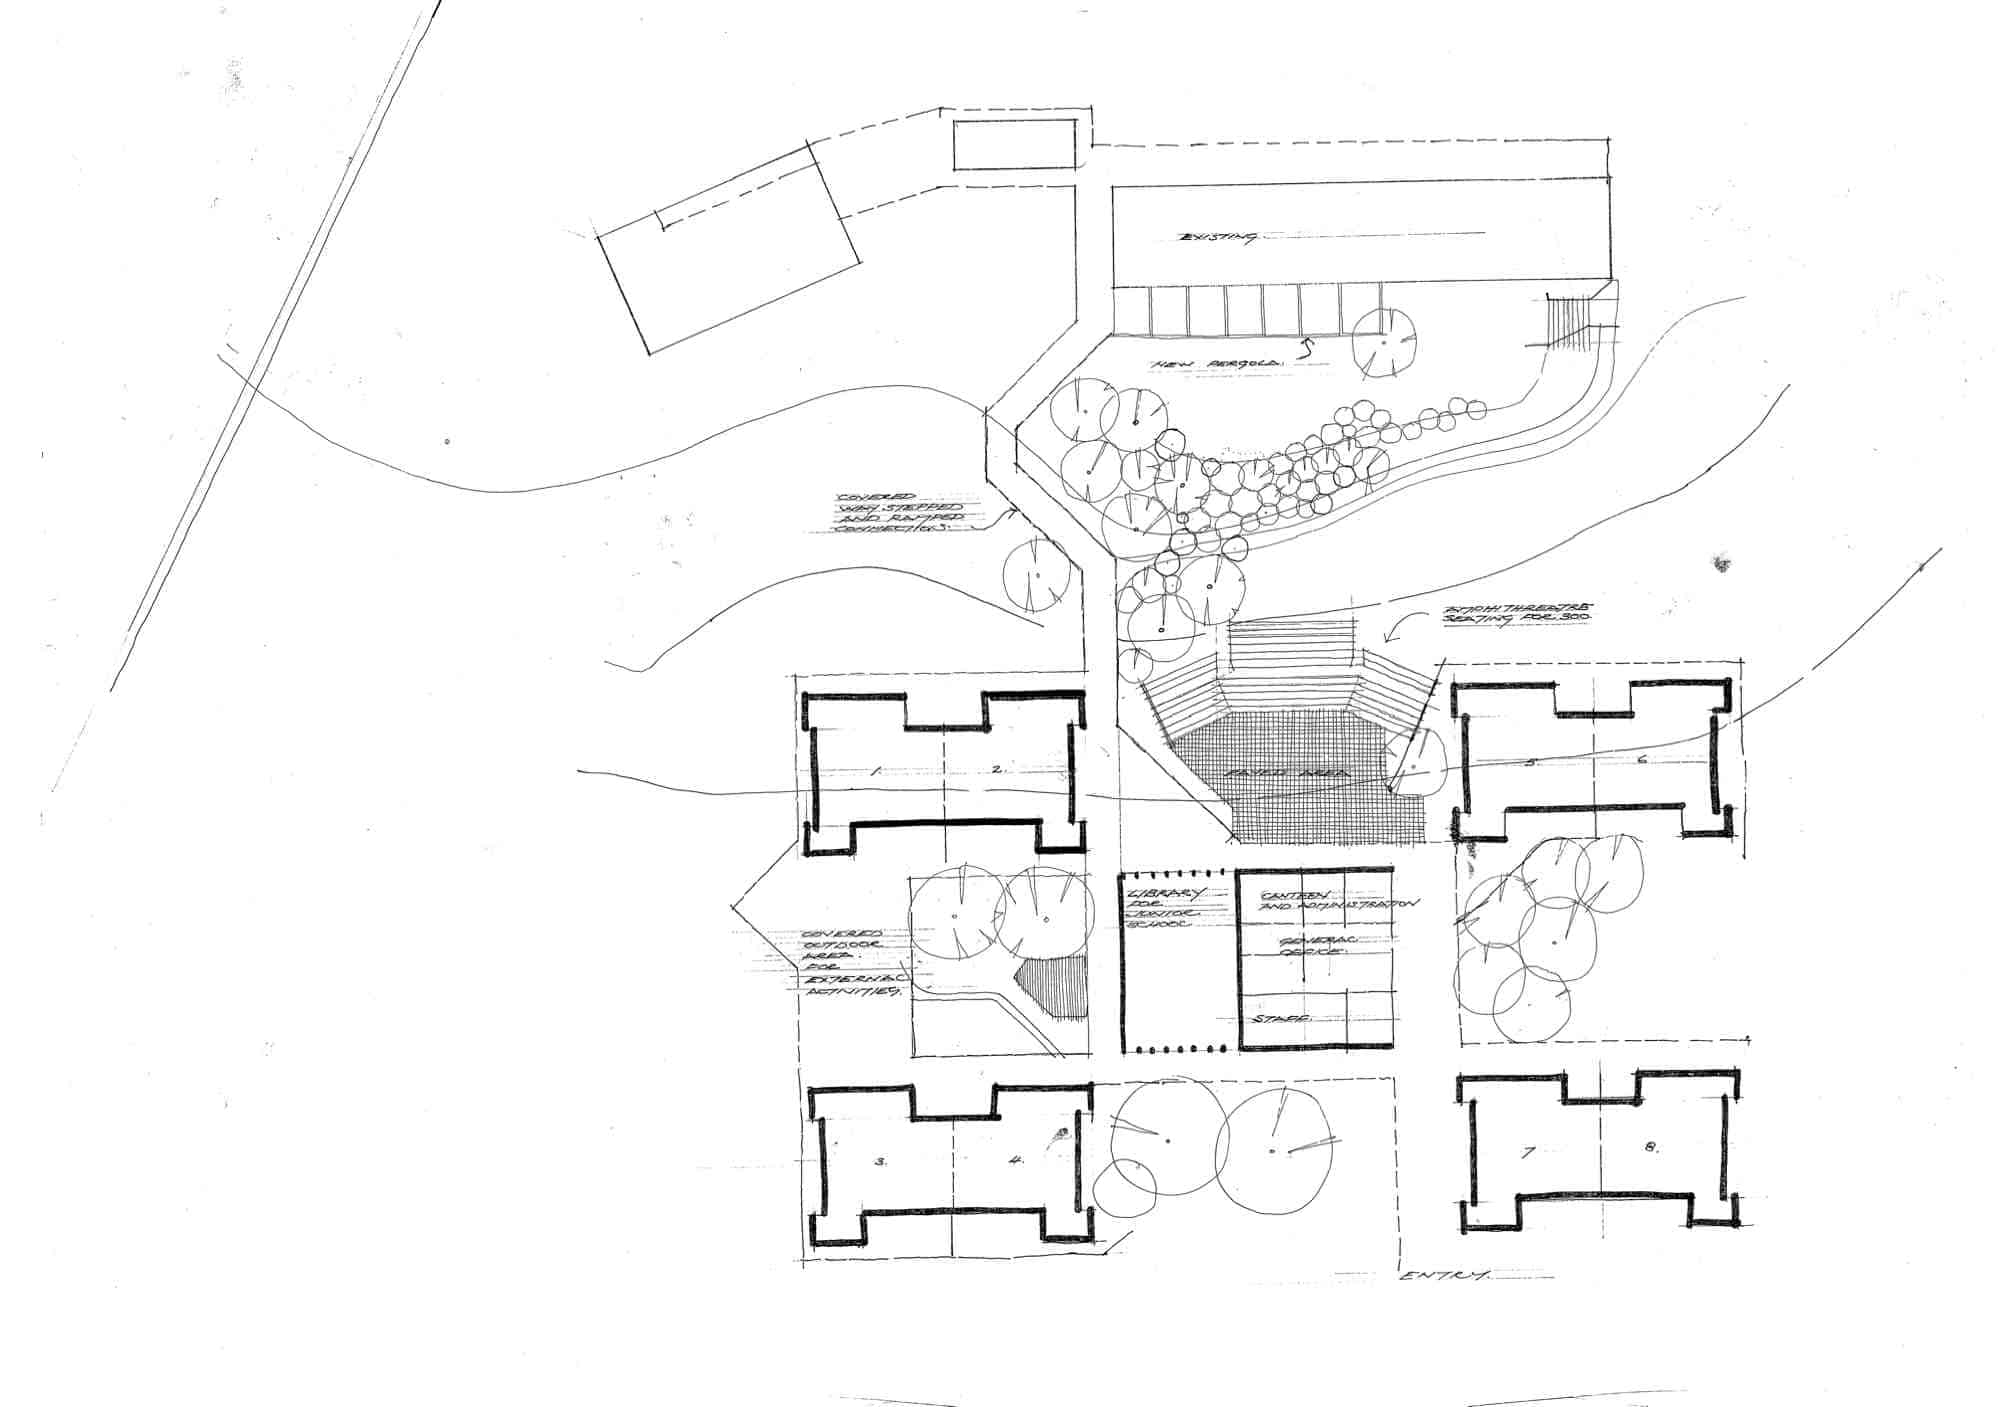 Mountain District Parent Controlled Christian School, 5:  site plan showing new buildings